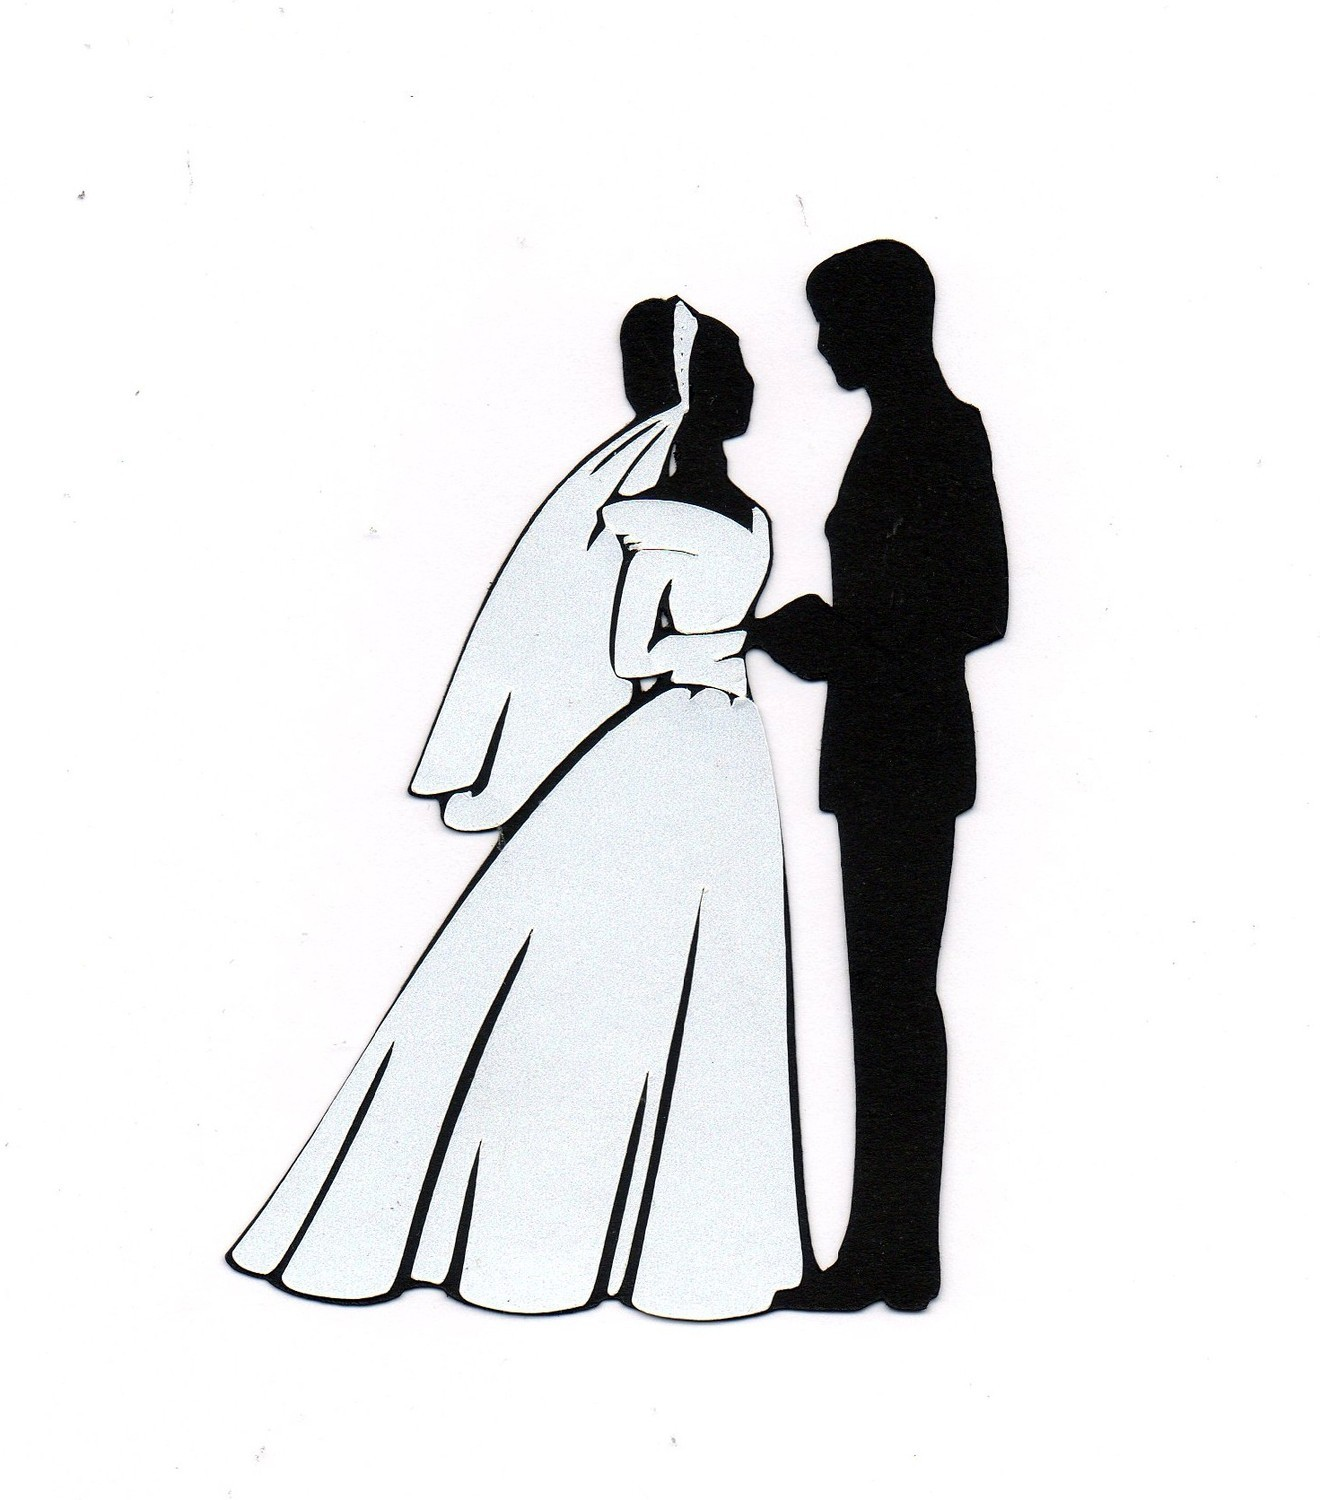 hight resolution of images for bride and groom silhouette